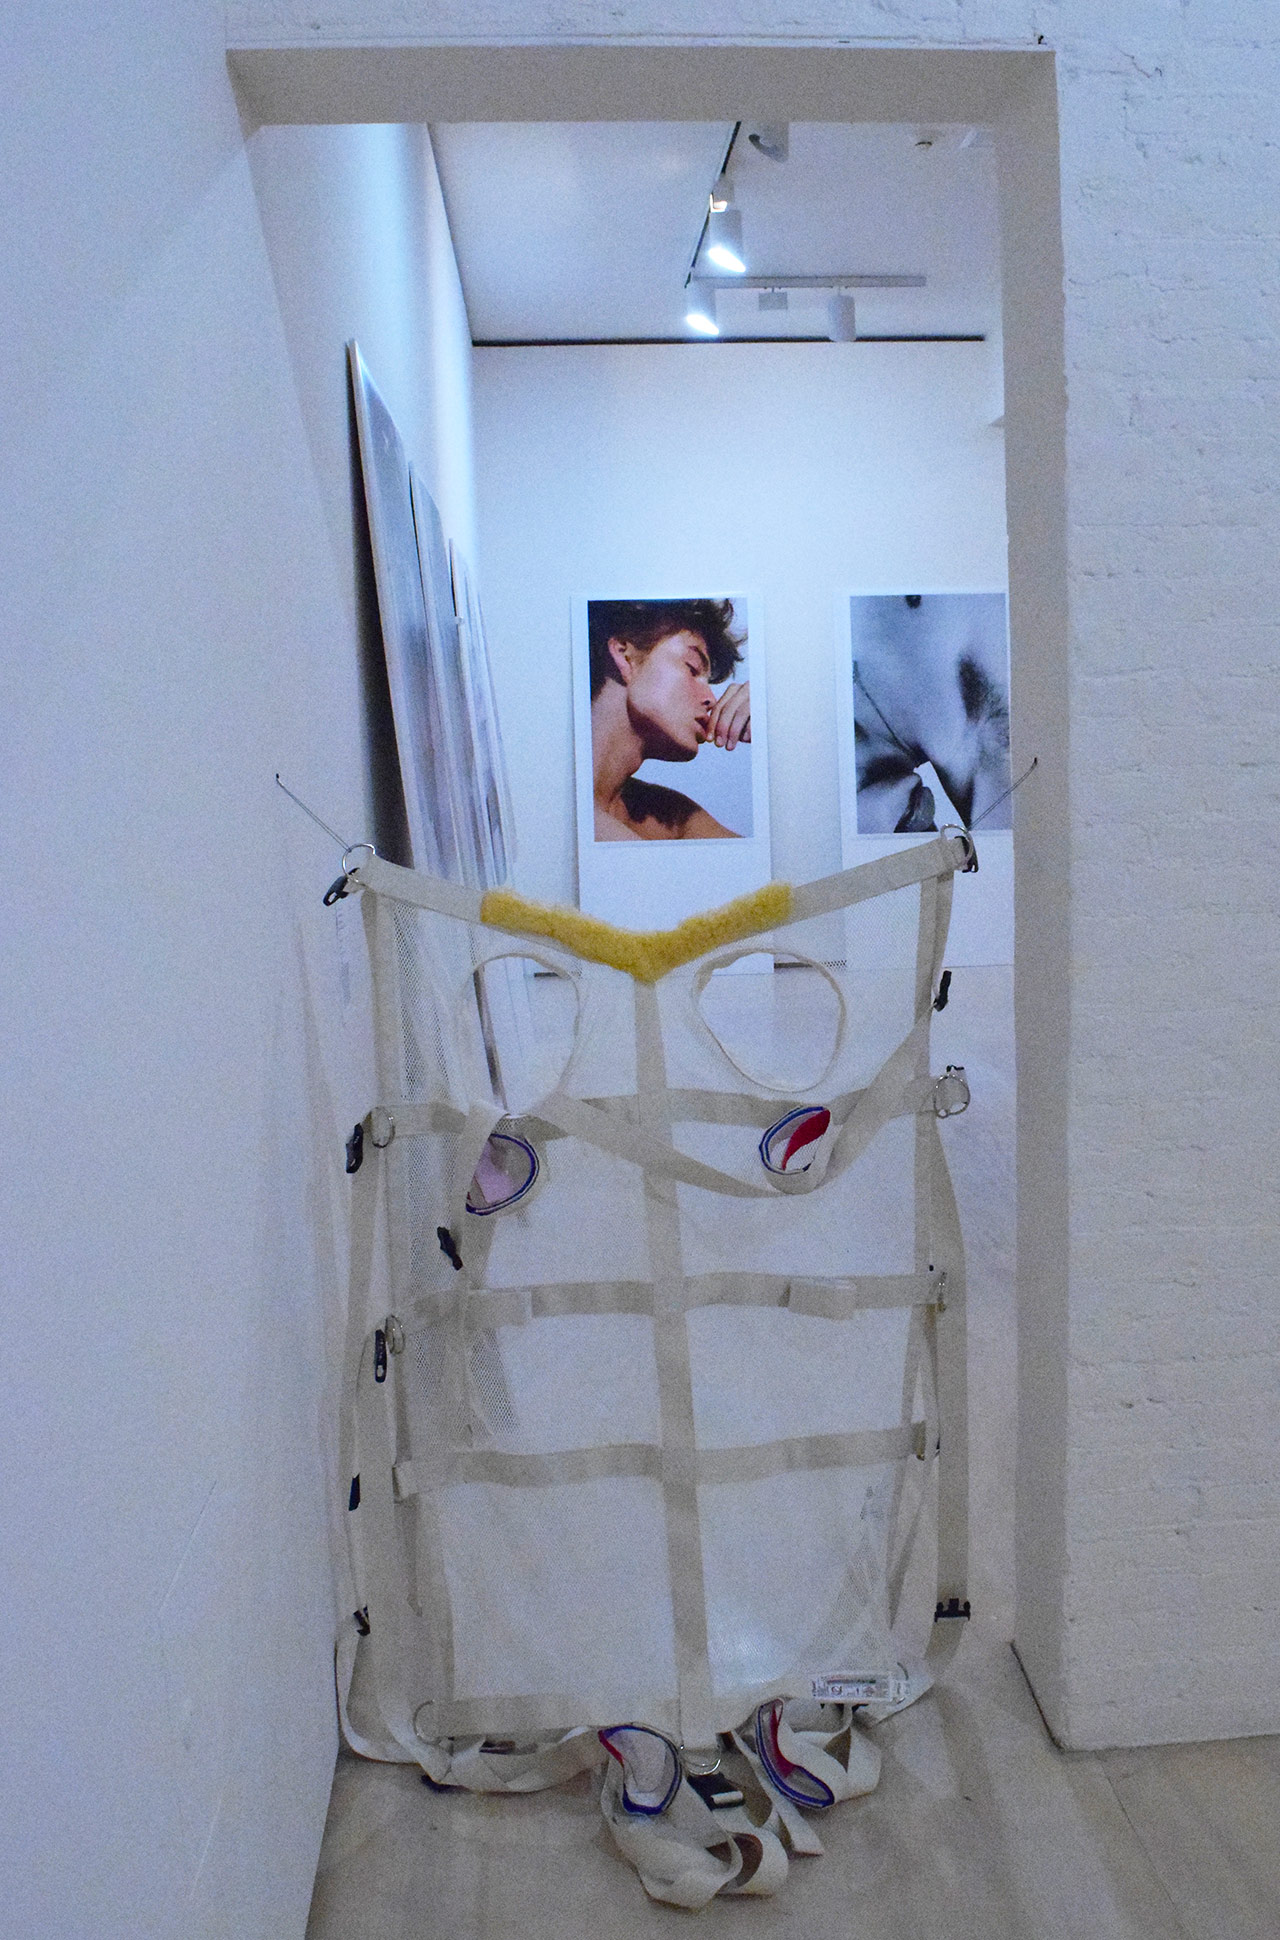 "Park McArthur, ""Posey Restraint"" (2014) blocks a doorway on MoMA PS1's second floor."